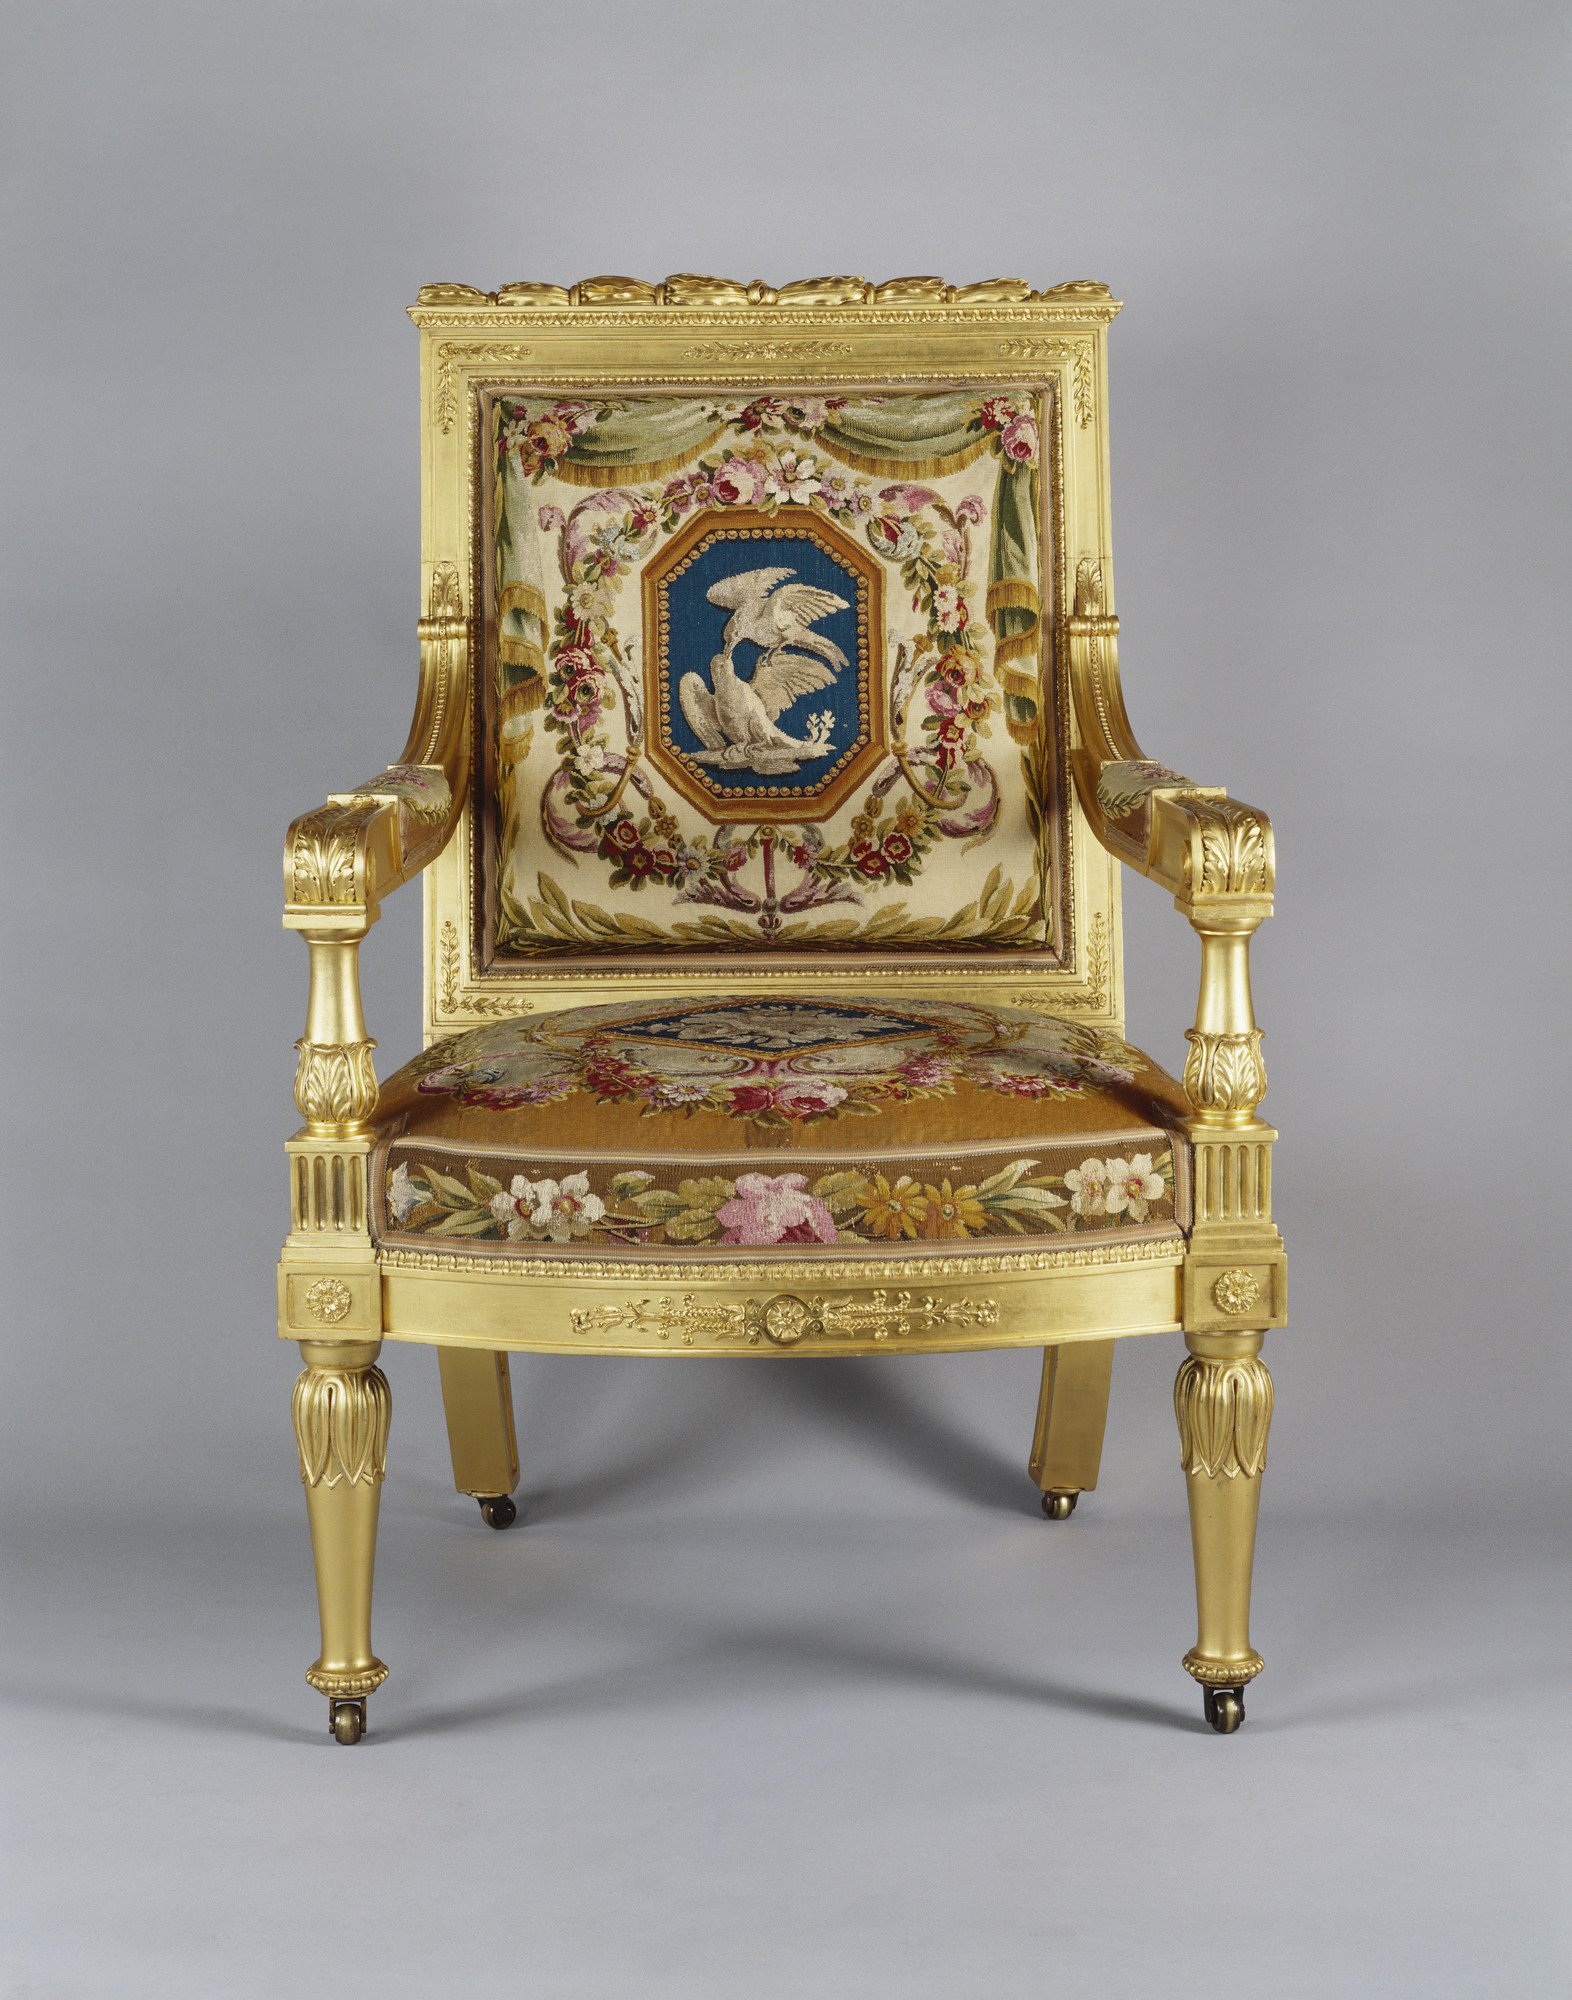 https://www.royalcollection.org.uk/sites/default/files/collection-online/6/4/183838-1403873843.jpg